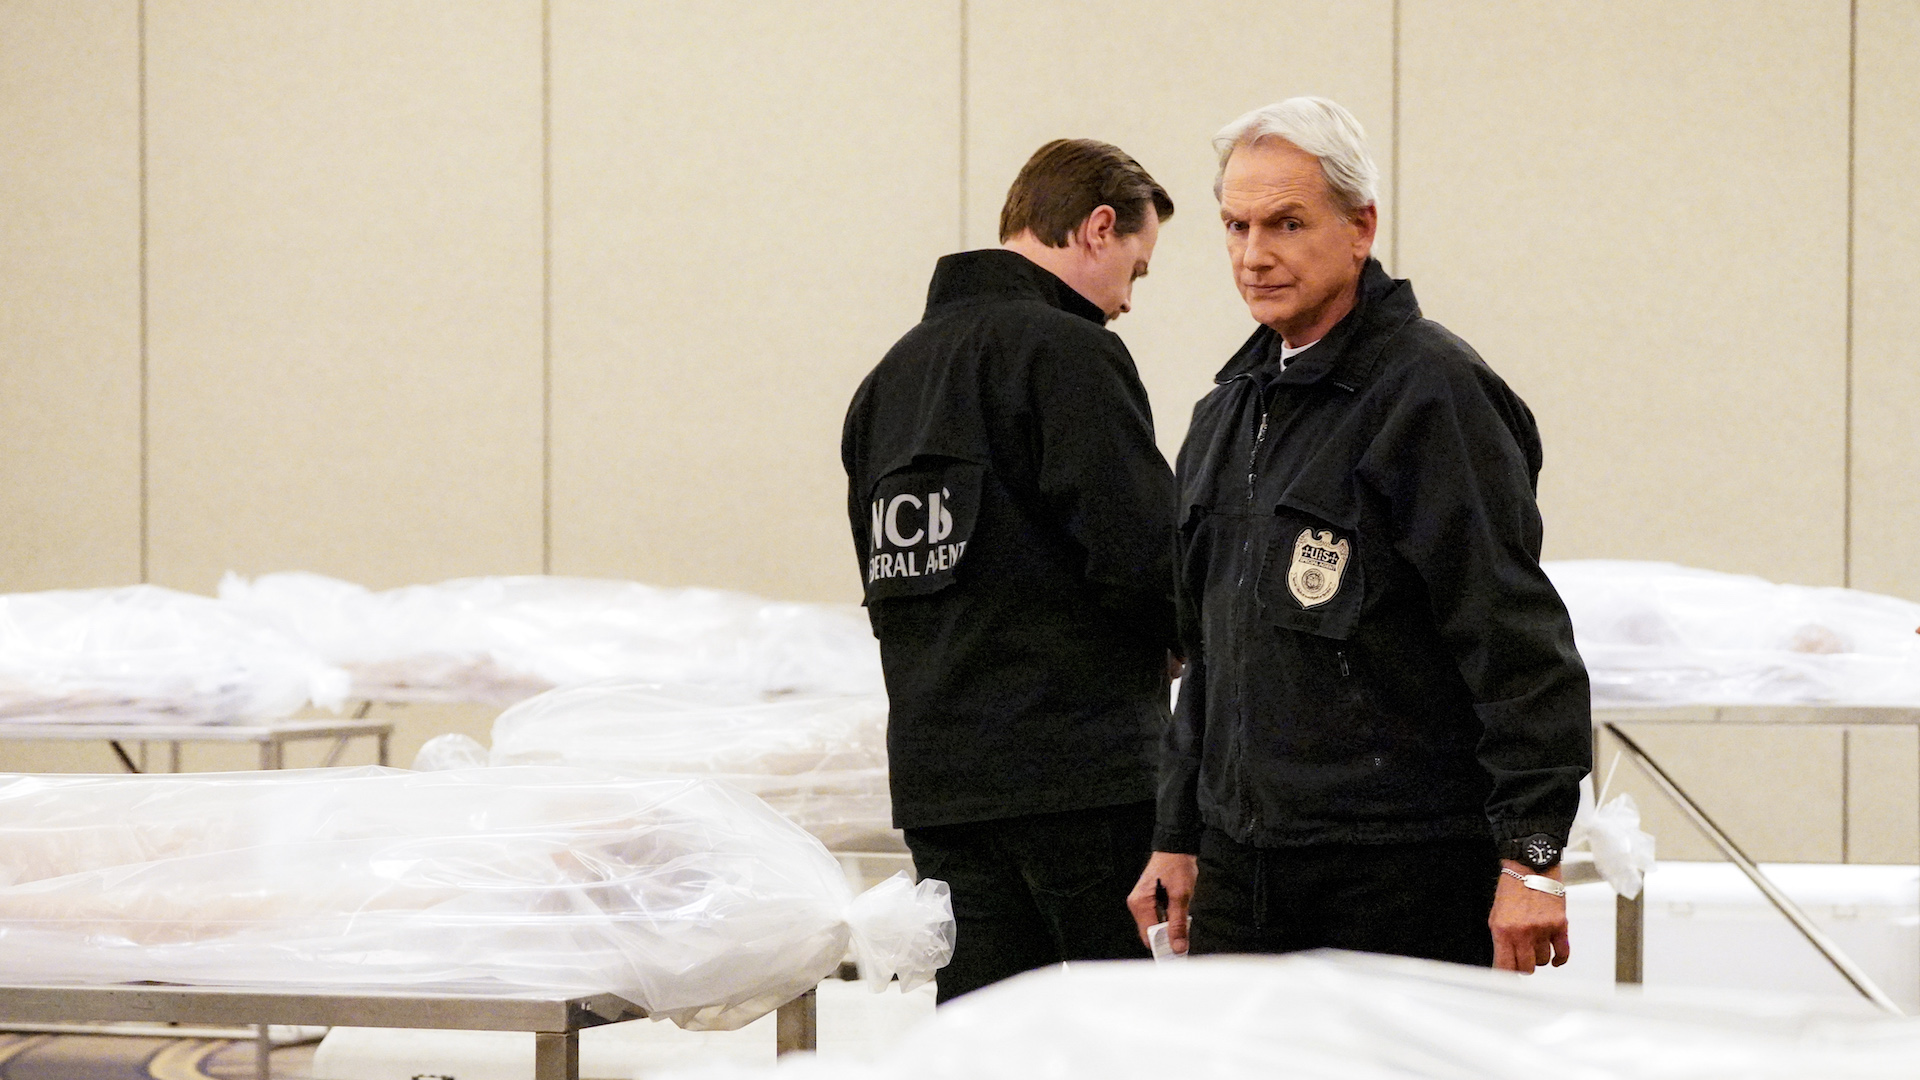 NCIS faces internal consequences in